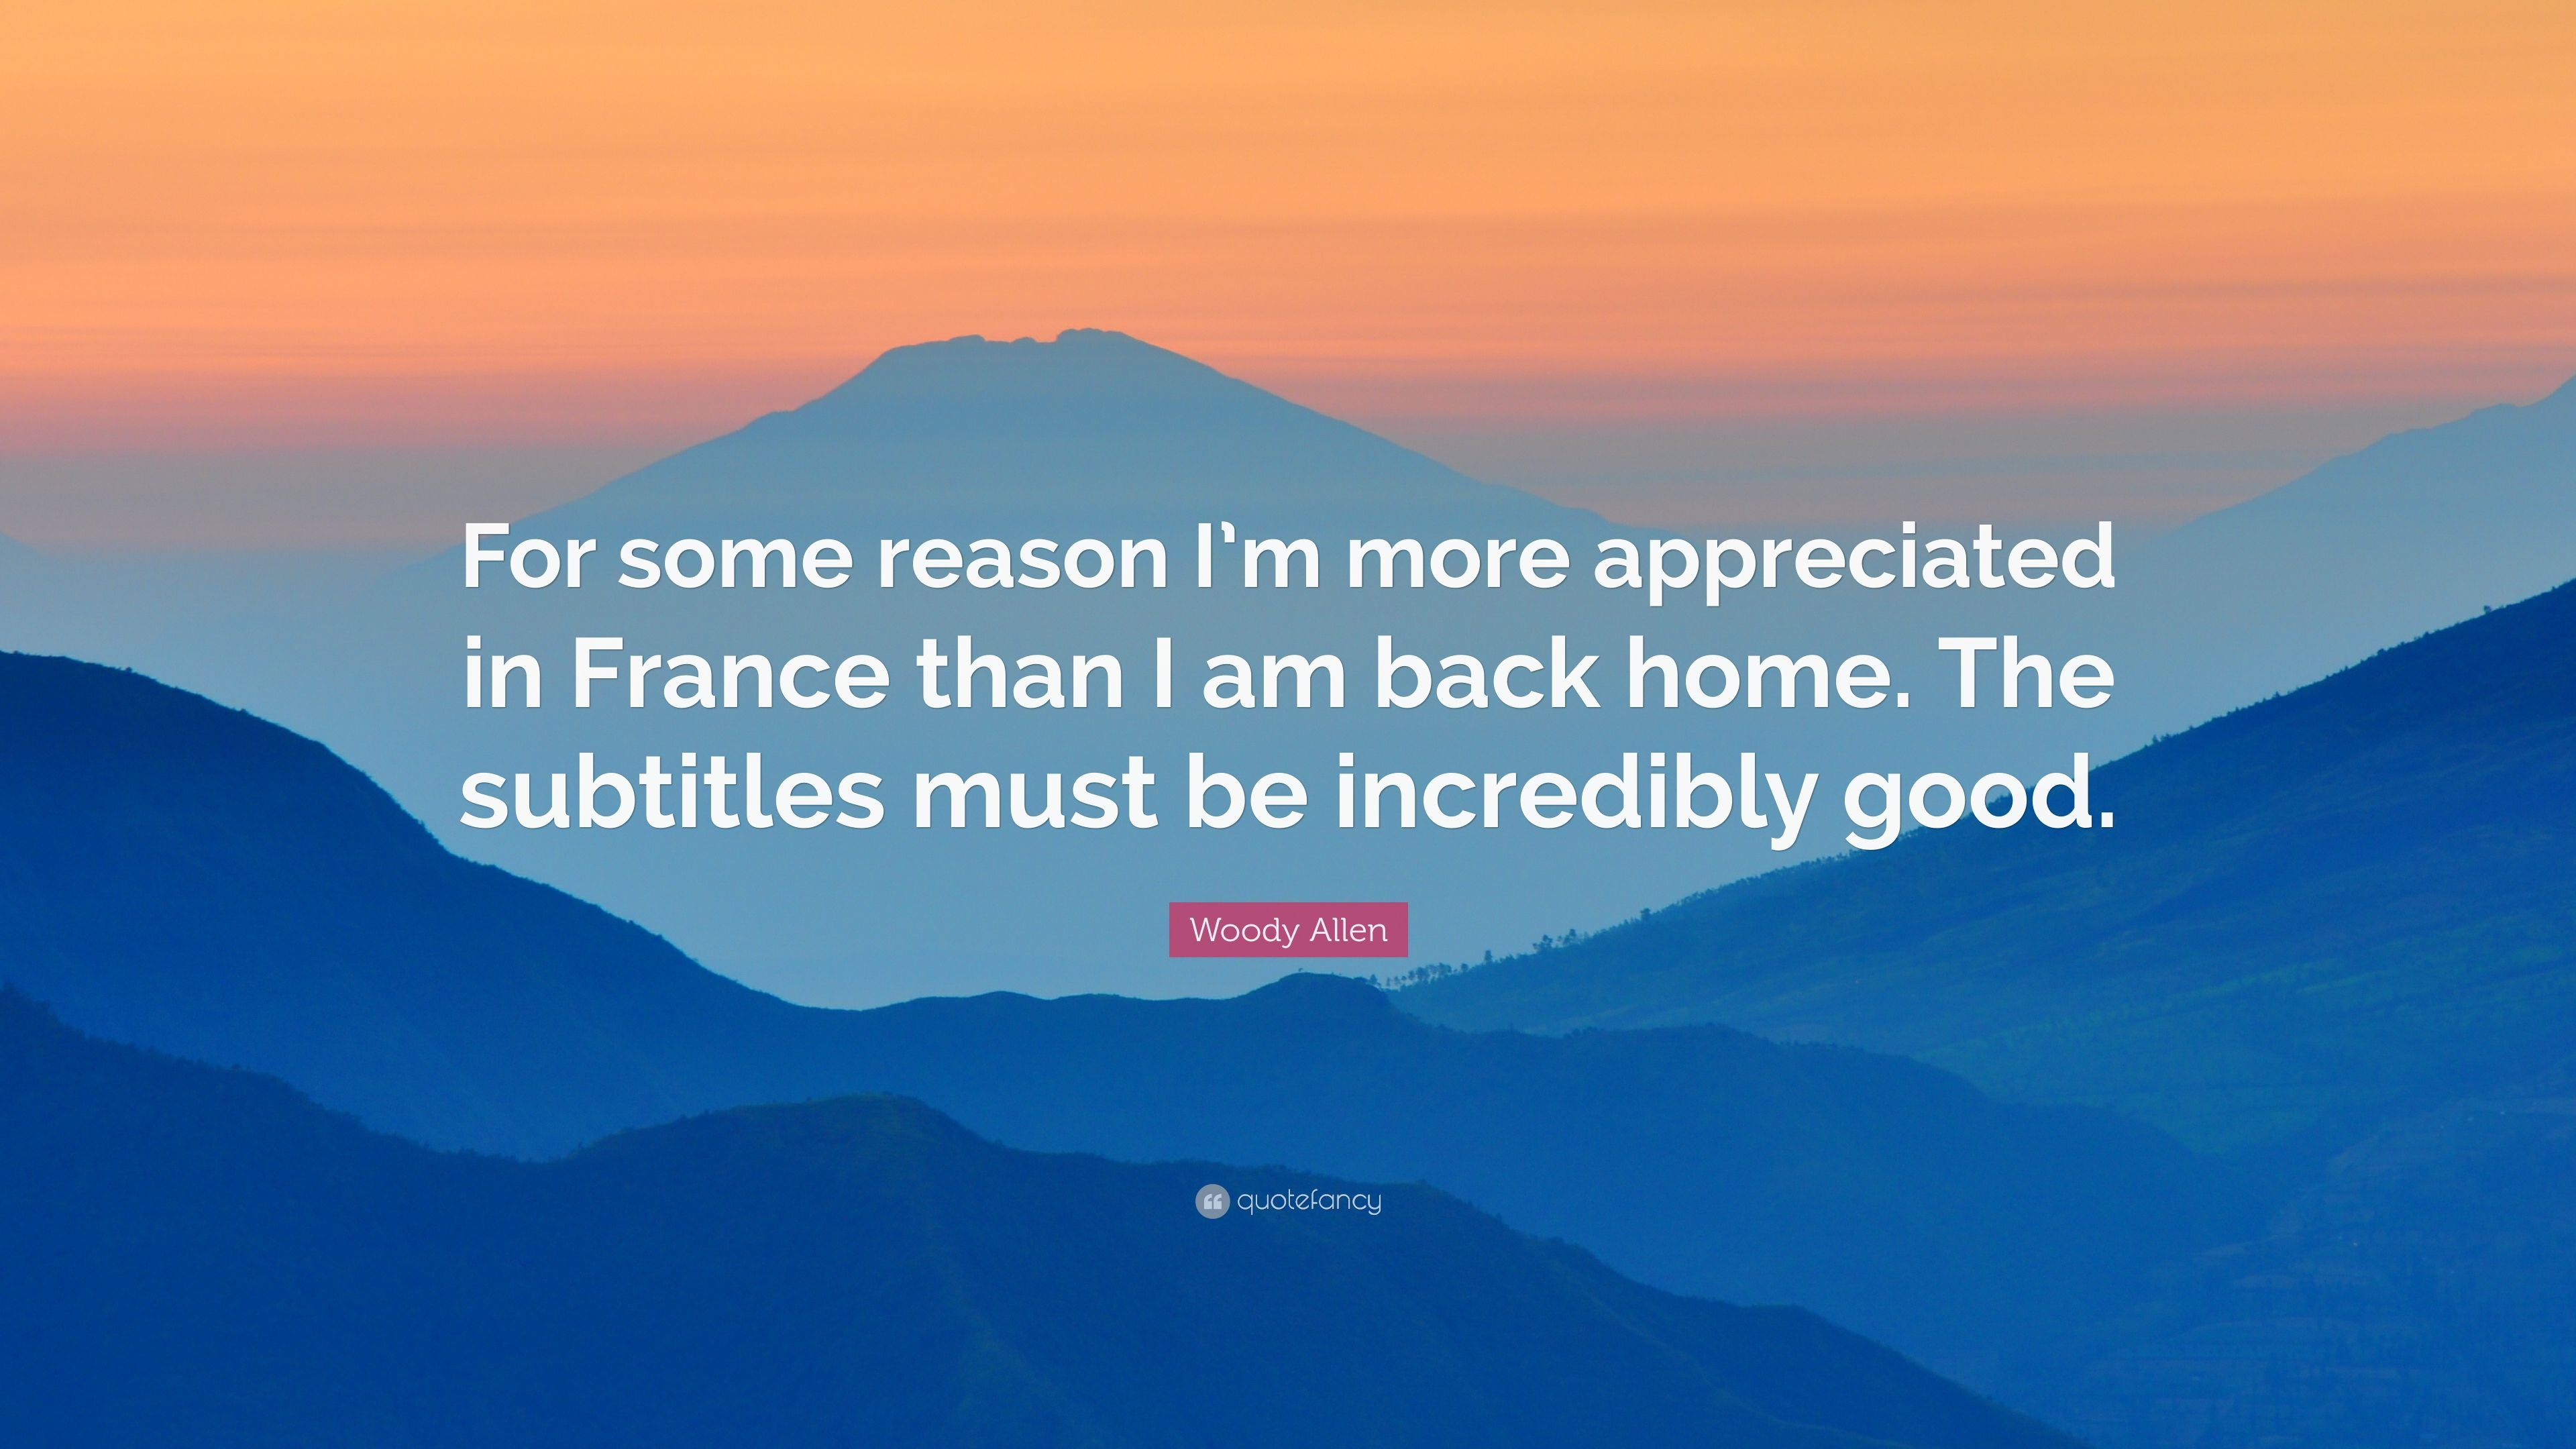 woody allen quote for some reason i m more appreciated in france